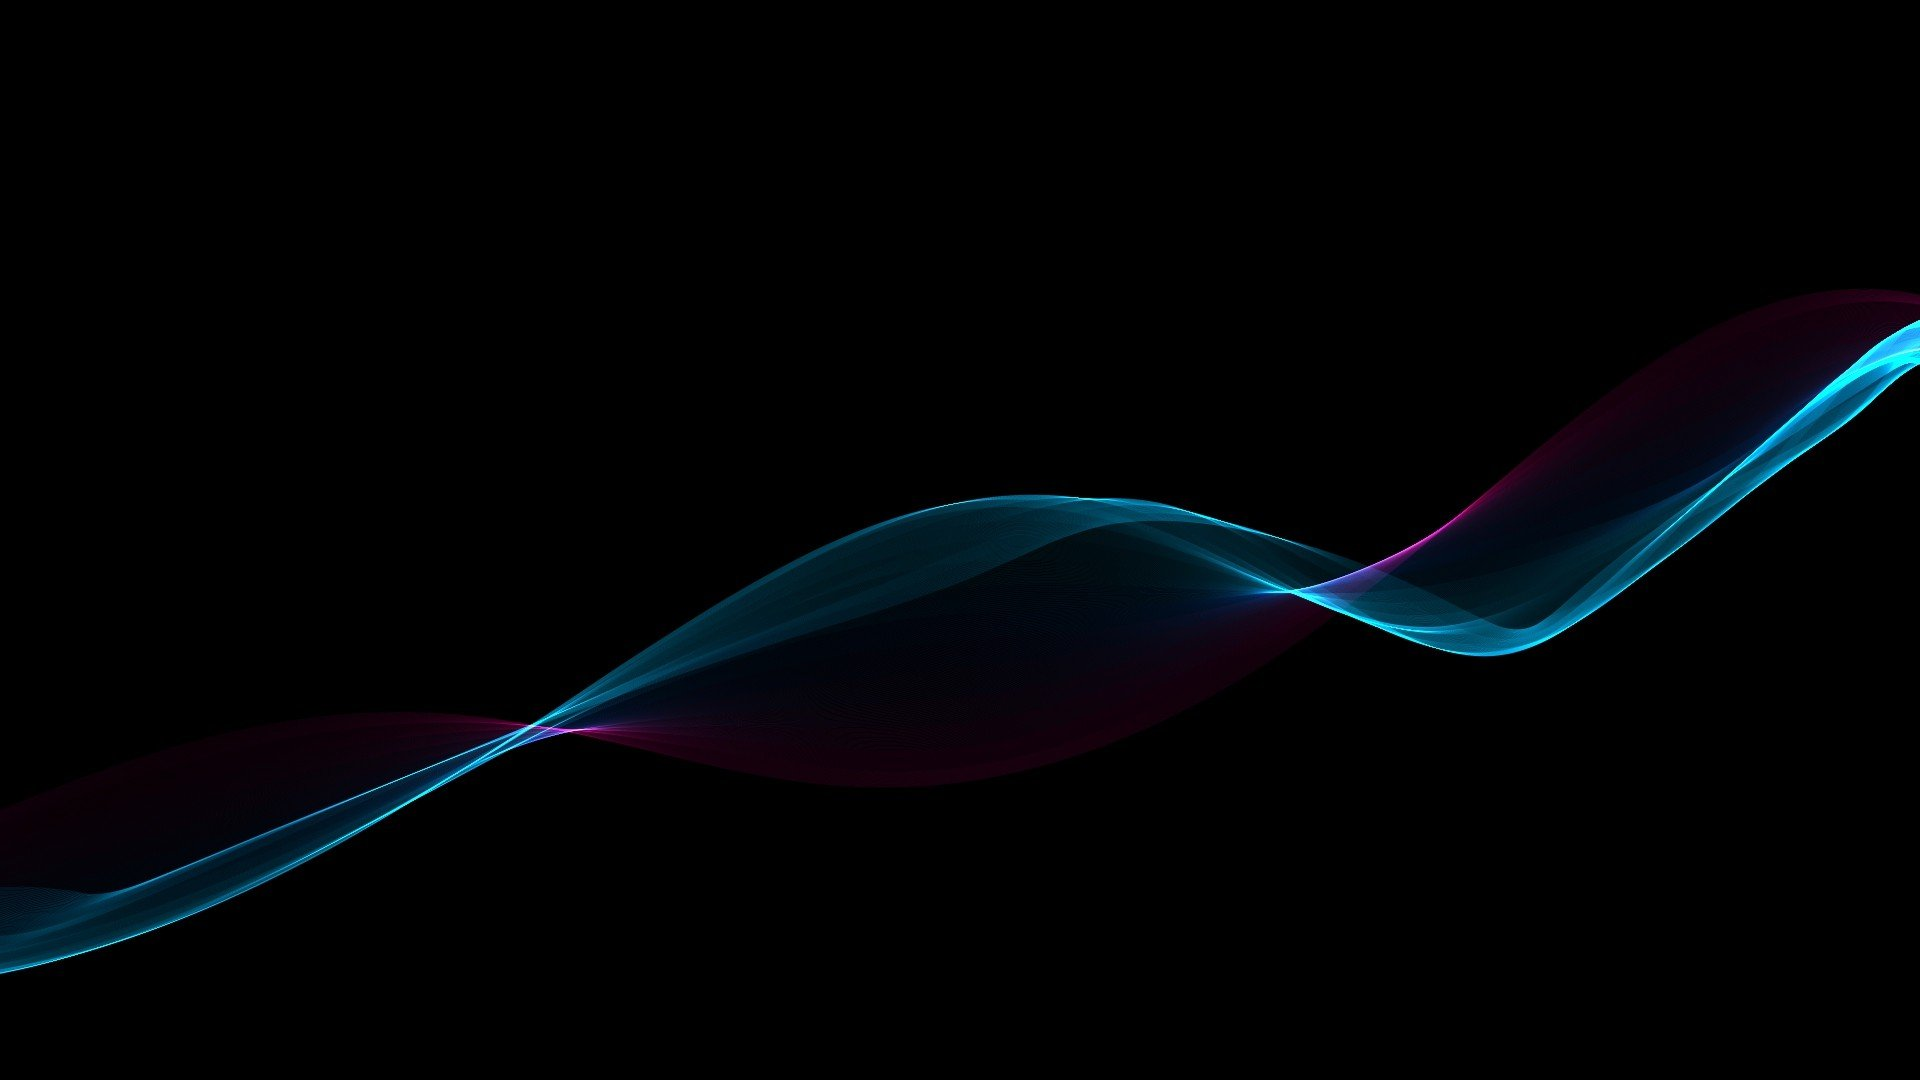 Abstract black minimalistic waves gradient wallpaper 1920x1080 257768 wallpaperup - Image wallpaper ...